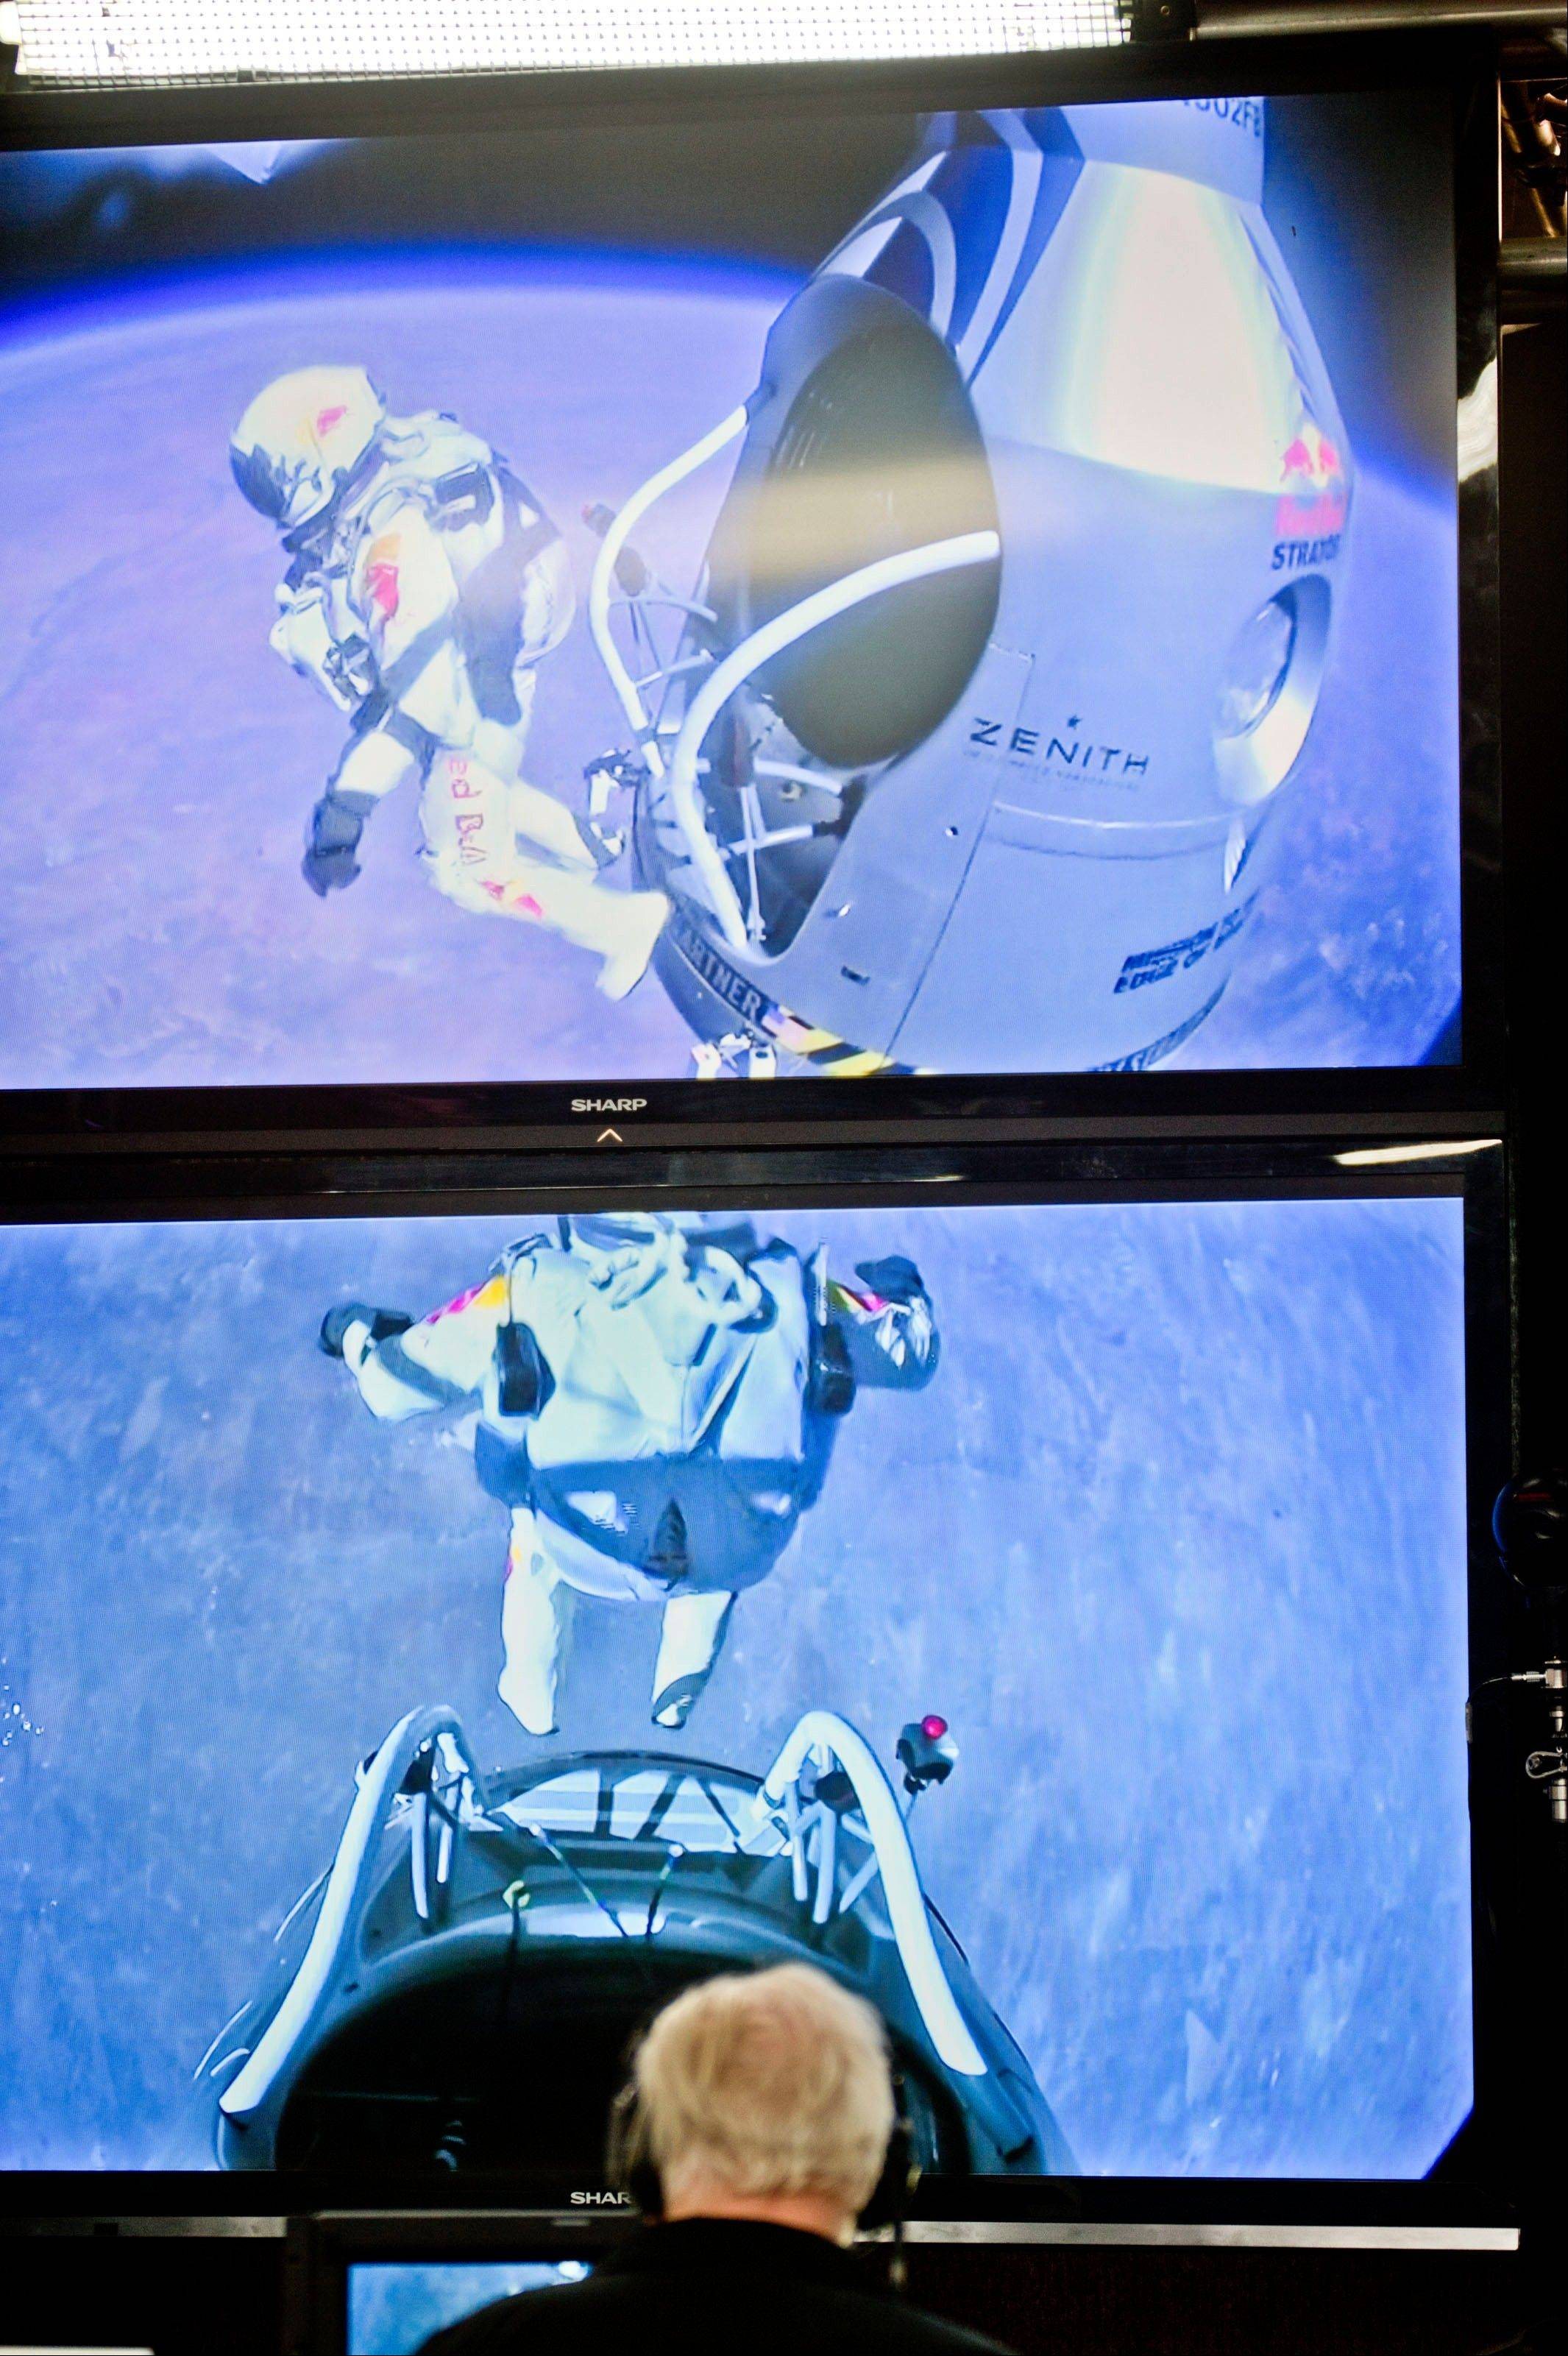 In this photo provided by Red Bull, Pilot Felix Baumgartner of Austria jumps out from the capsule during the final manned flight for Red Bull Stratos in Roswell, N.M., Sunday, Oct. 14, 2012.�Baumgartner came down safely in the eastern New Mexico desert minutes about nine minutes after jumping from his capsule 128,097 feet, or roughly 24 miles, above Earth.